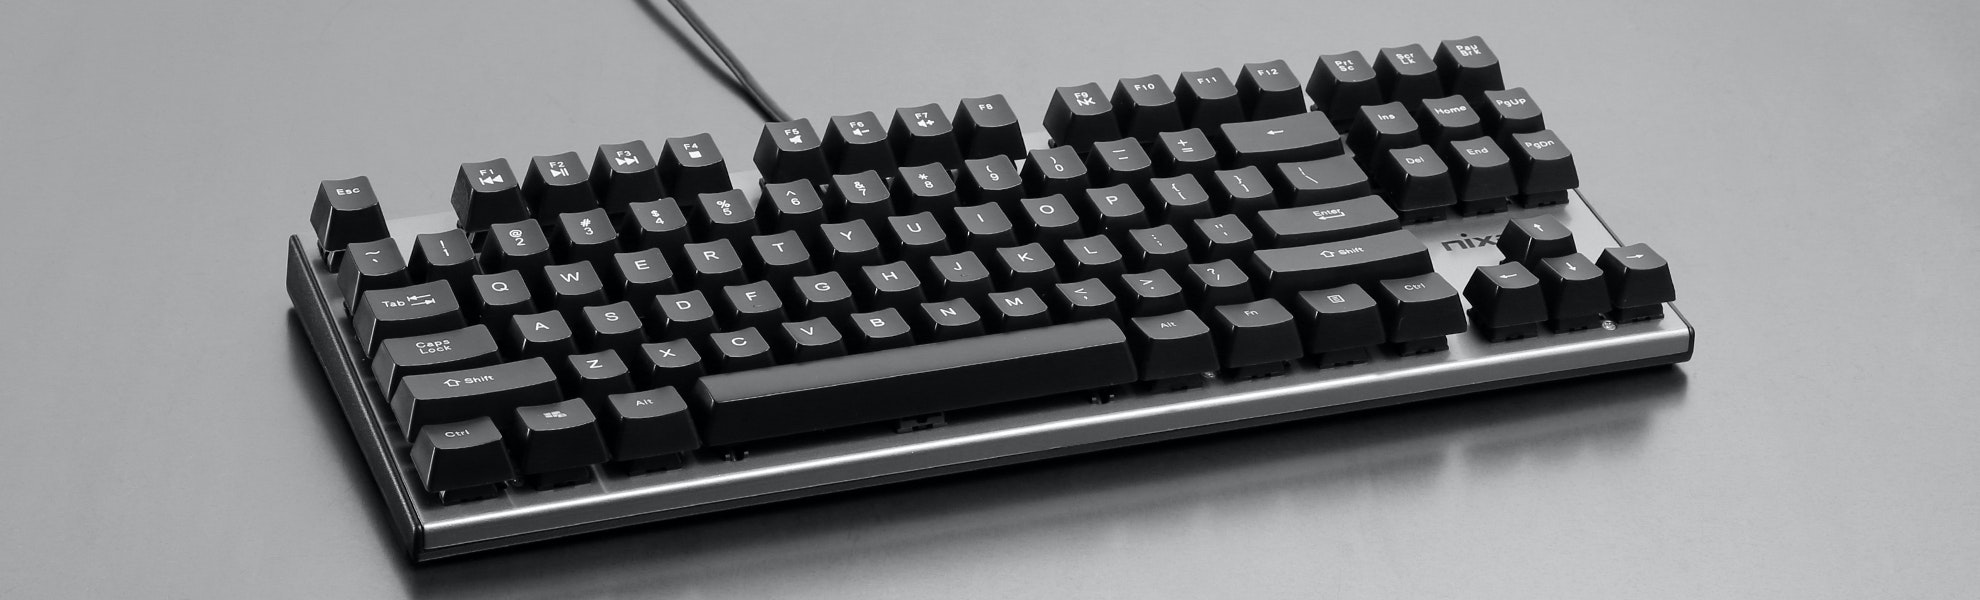 Nixeus Moda V2 TKL Mechanical Keyboard